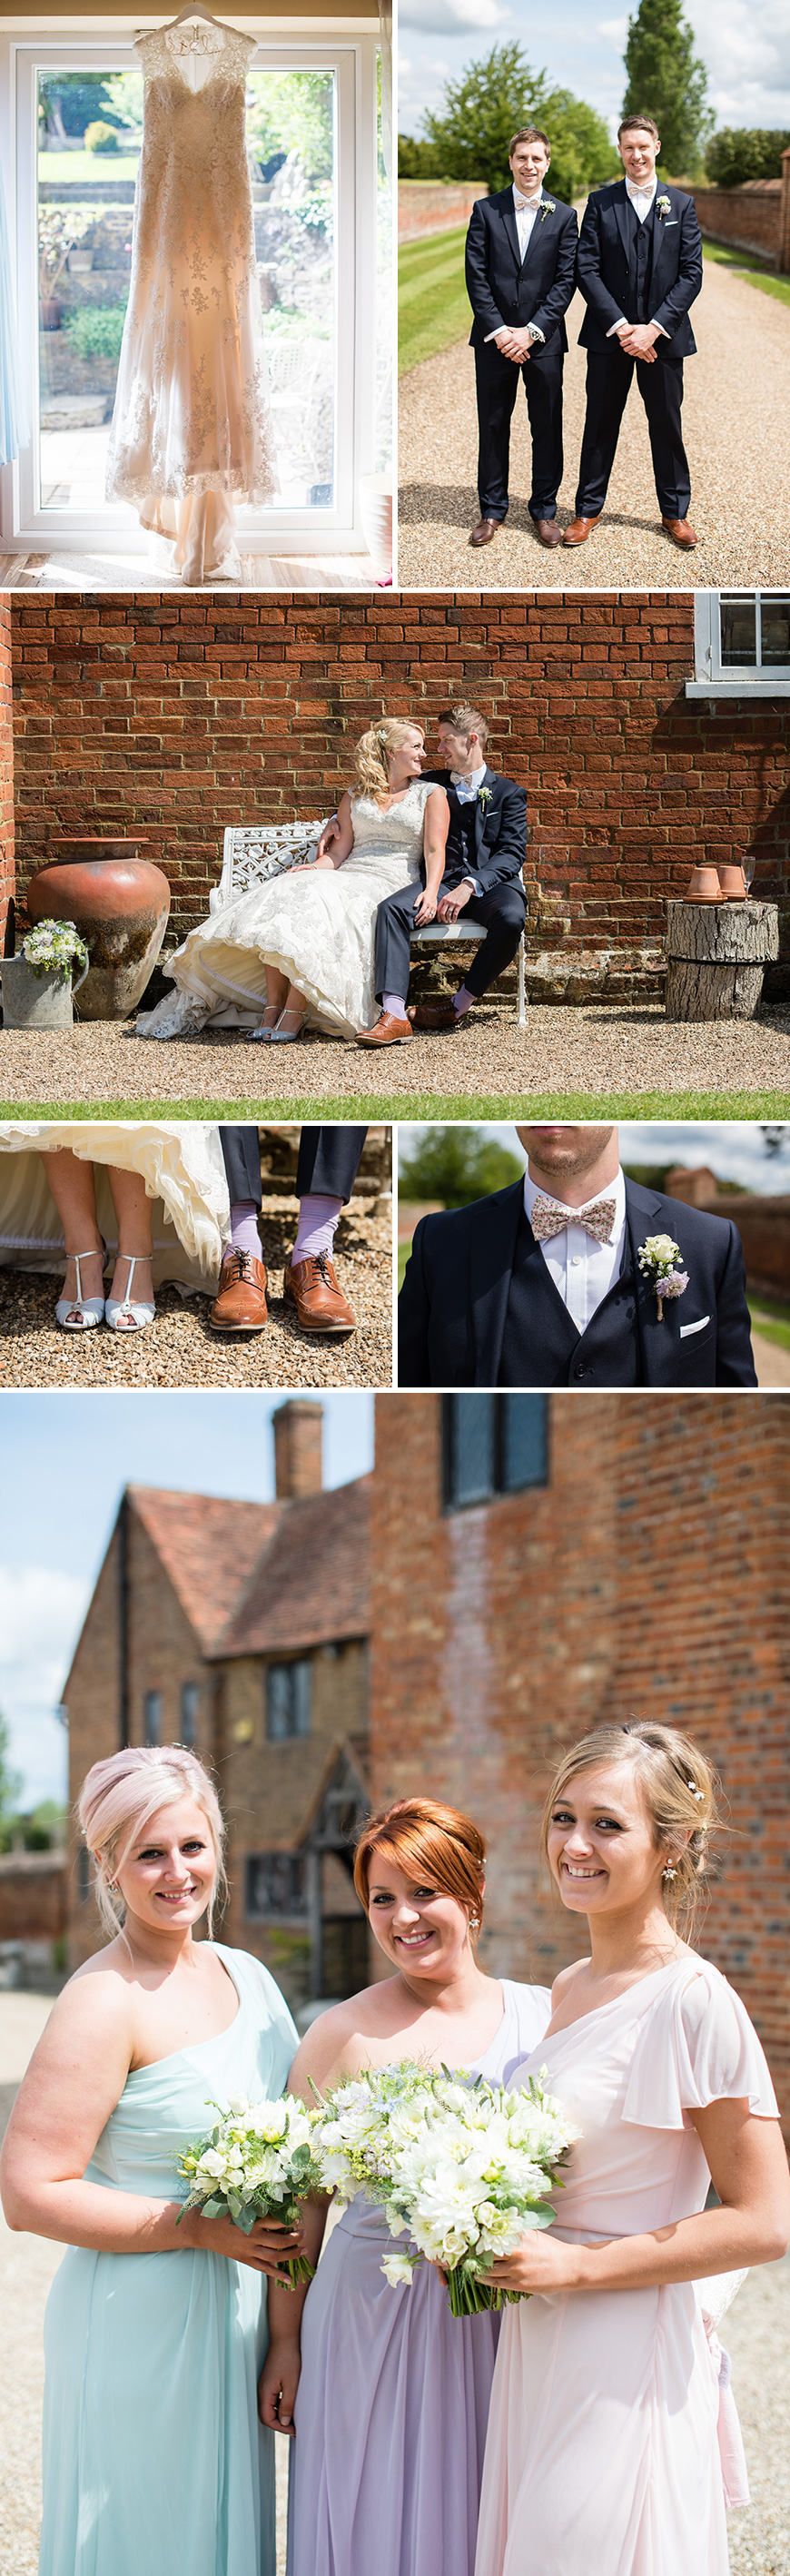 A Country Fair-Inspired Wedding at Lillibrooke Manor - The outfits | CHWV